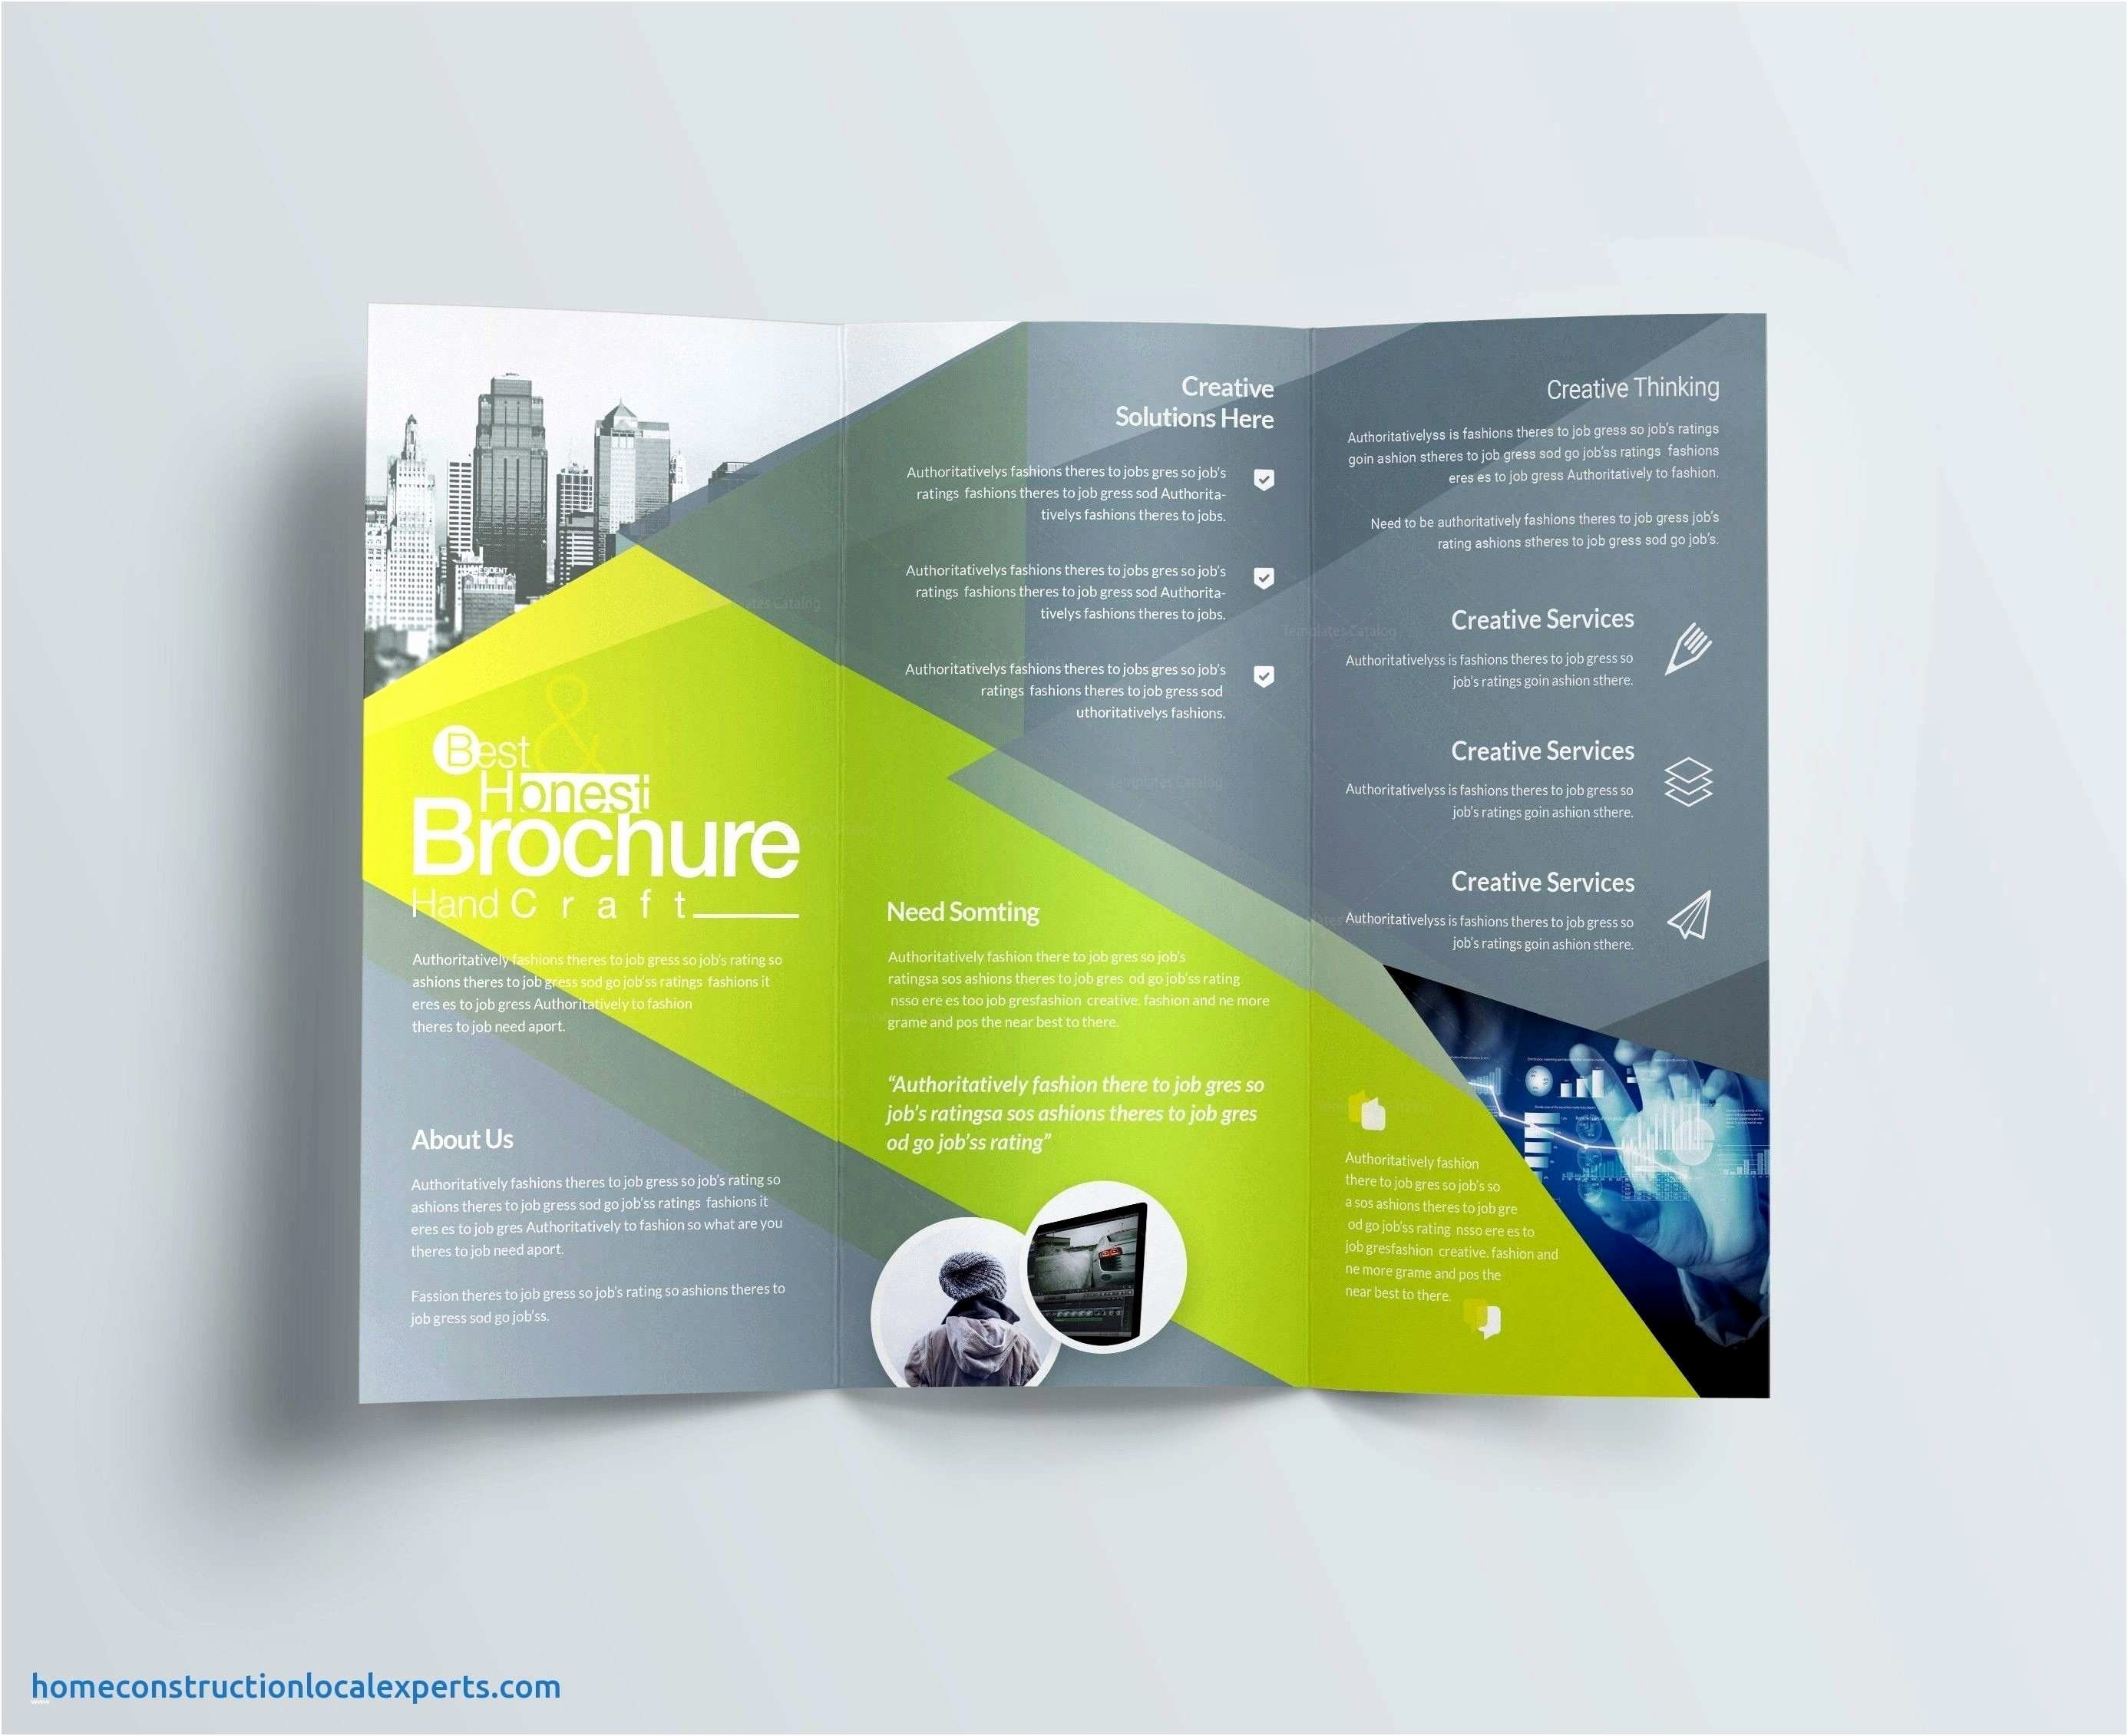 Indesign Business Card Template Free Best Of Adobe Indesign Business Card Template Beautiful Adobe